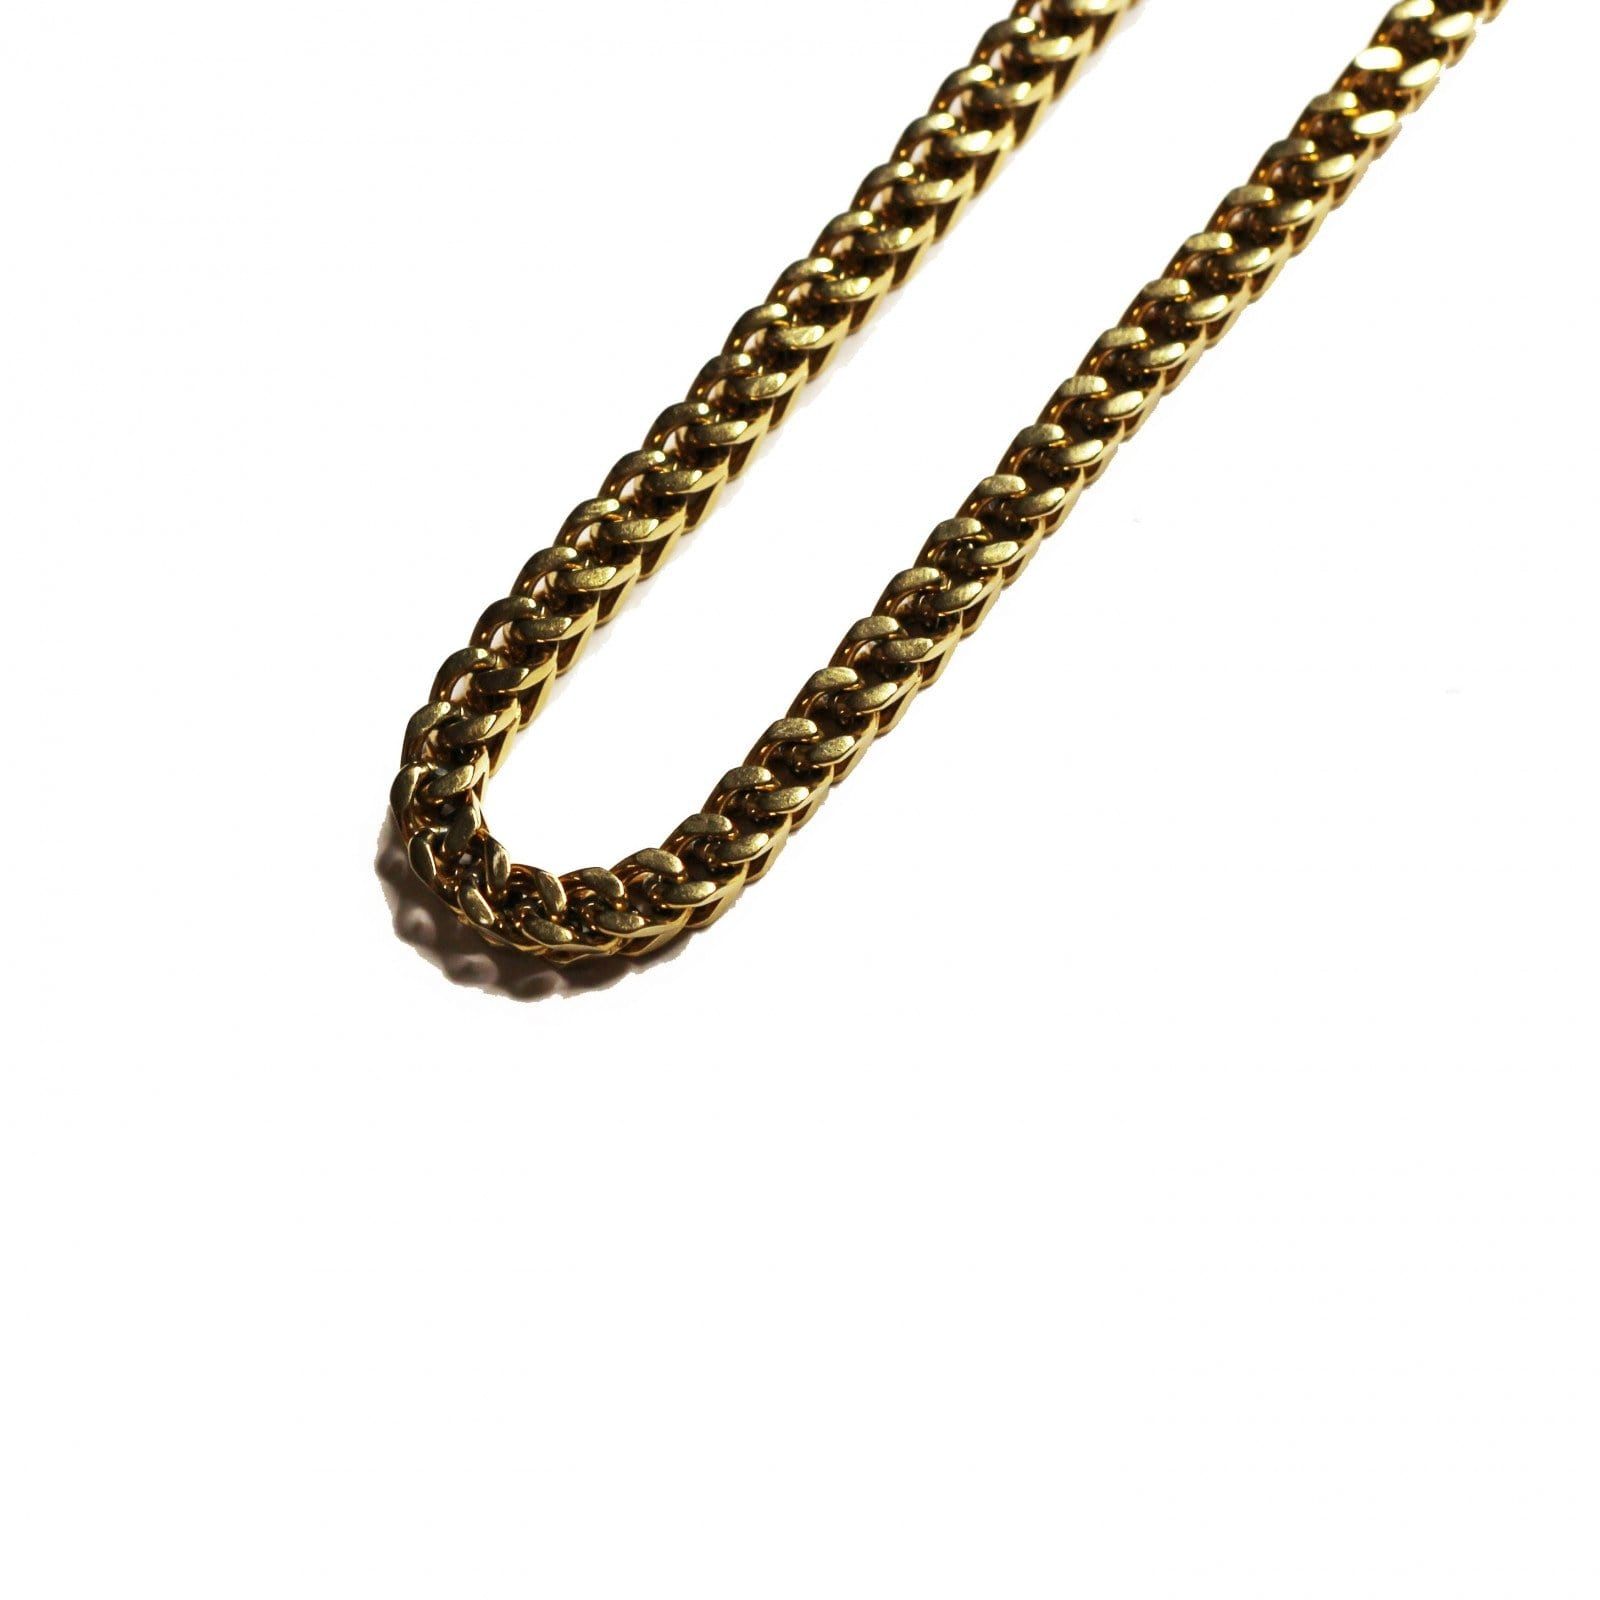 Square Gold Chain RSTKD Vintage